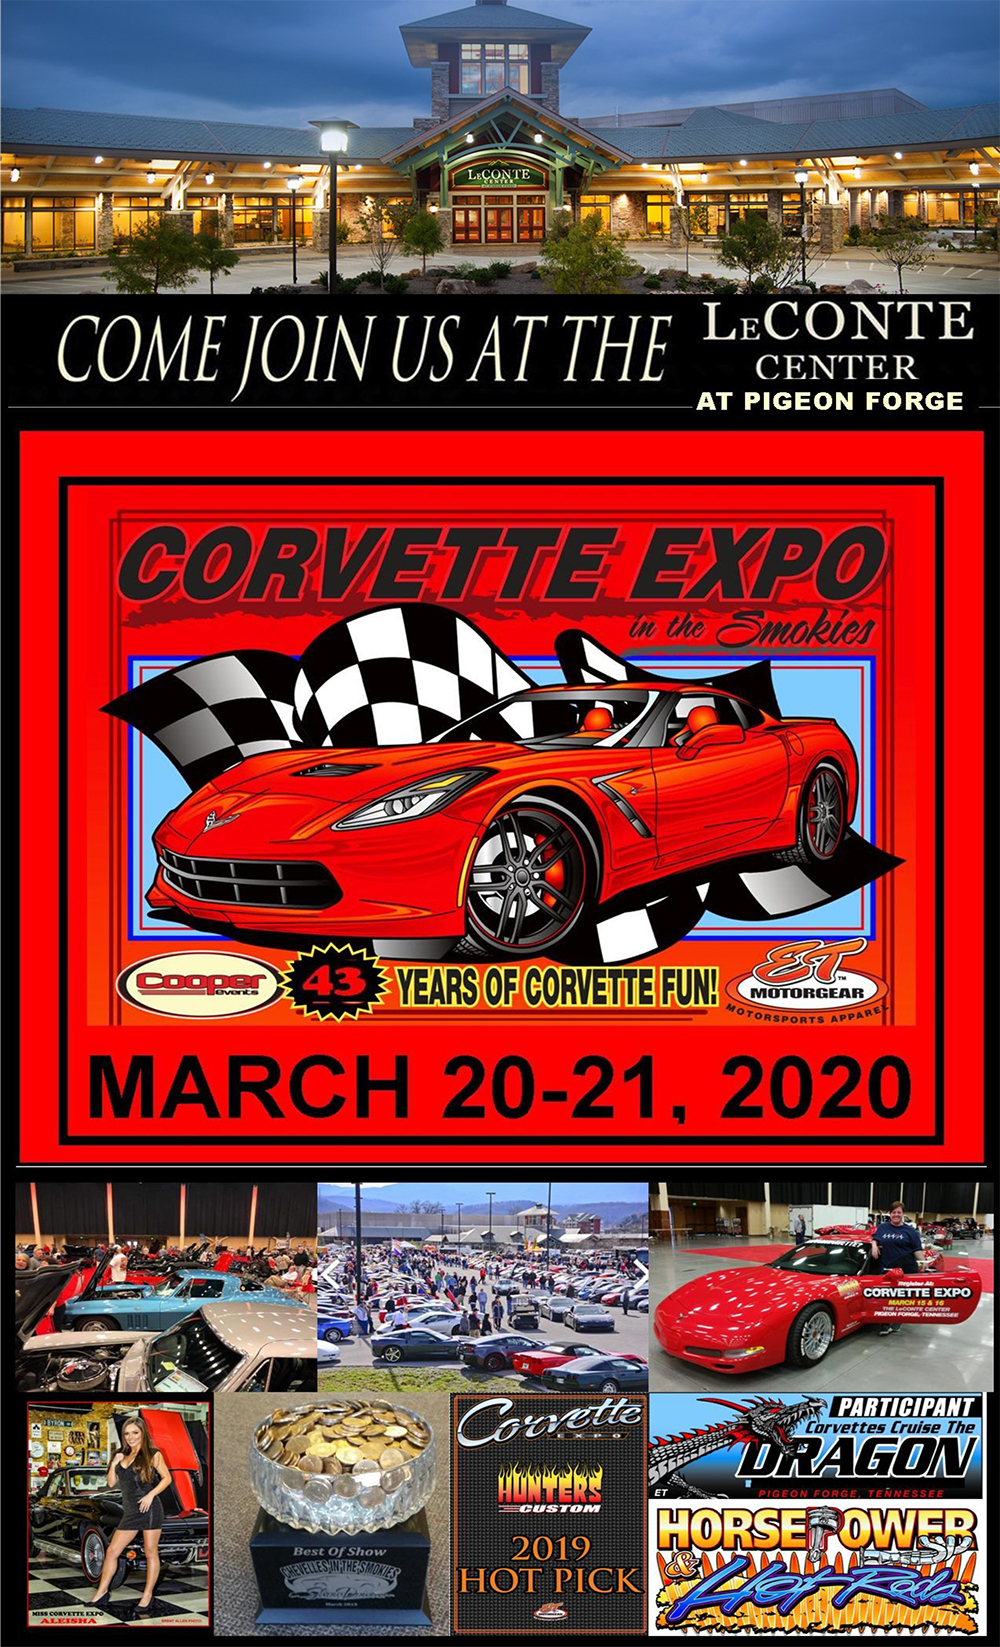 Corvette Expo | Spring Show - March 15-16, 2019